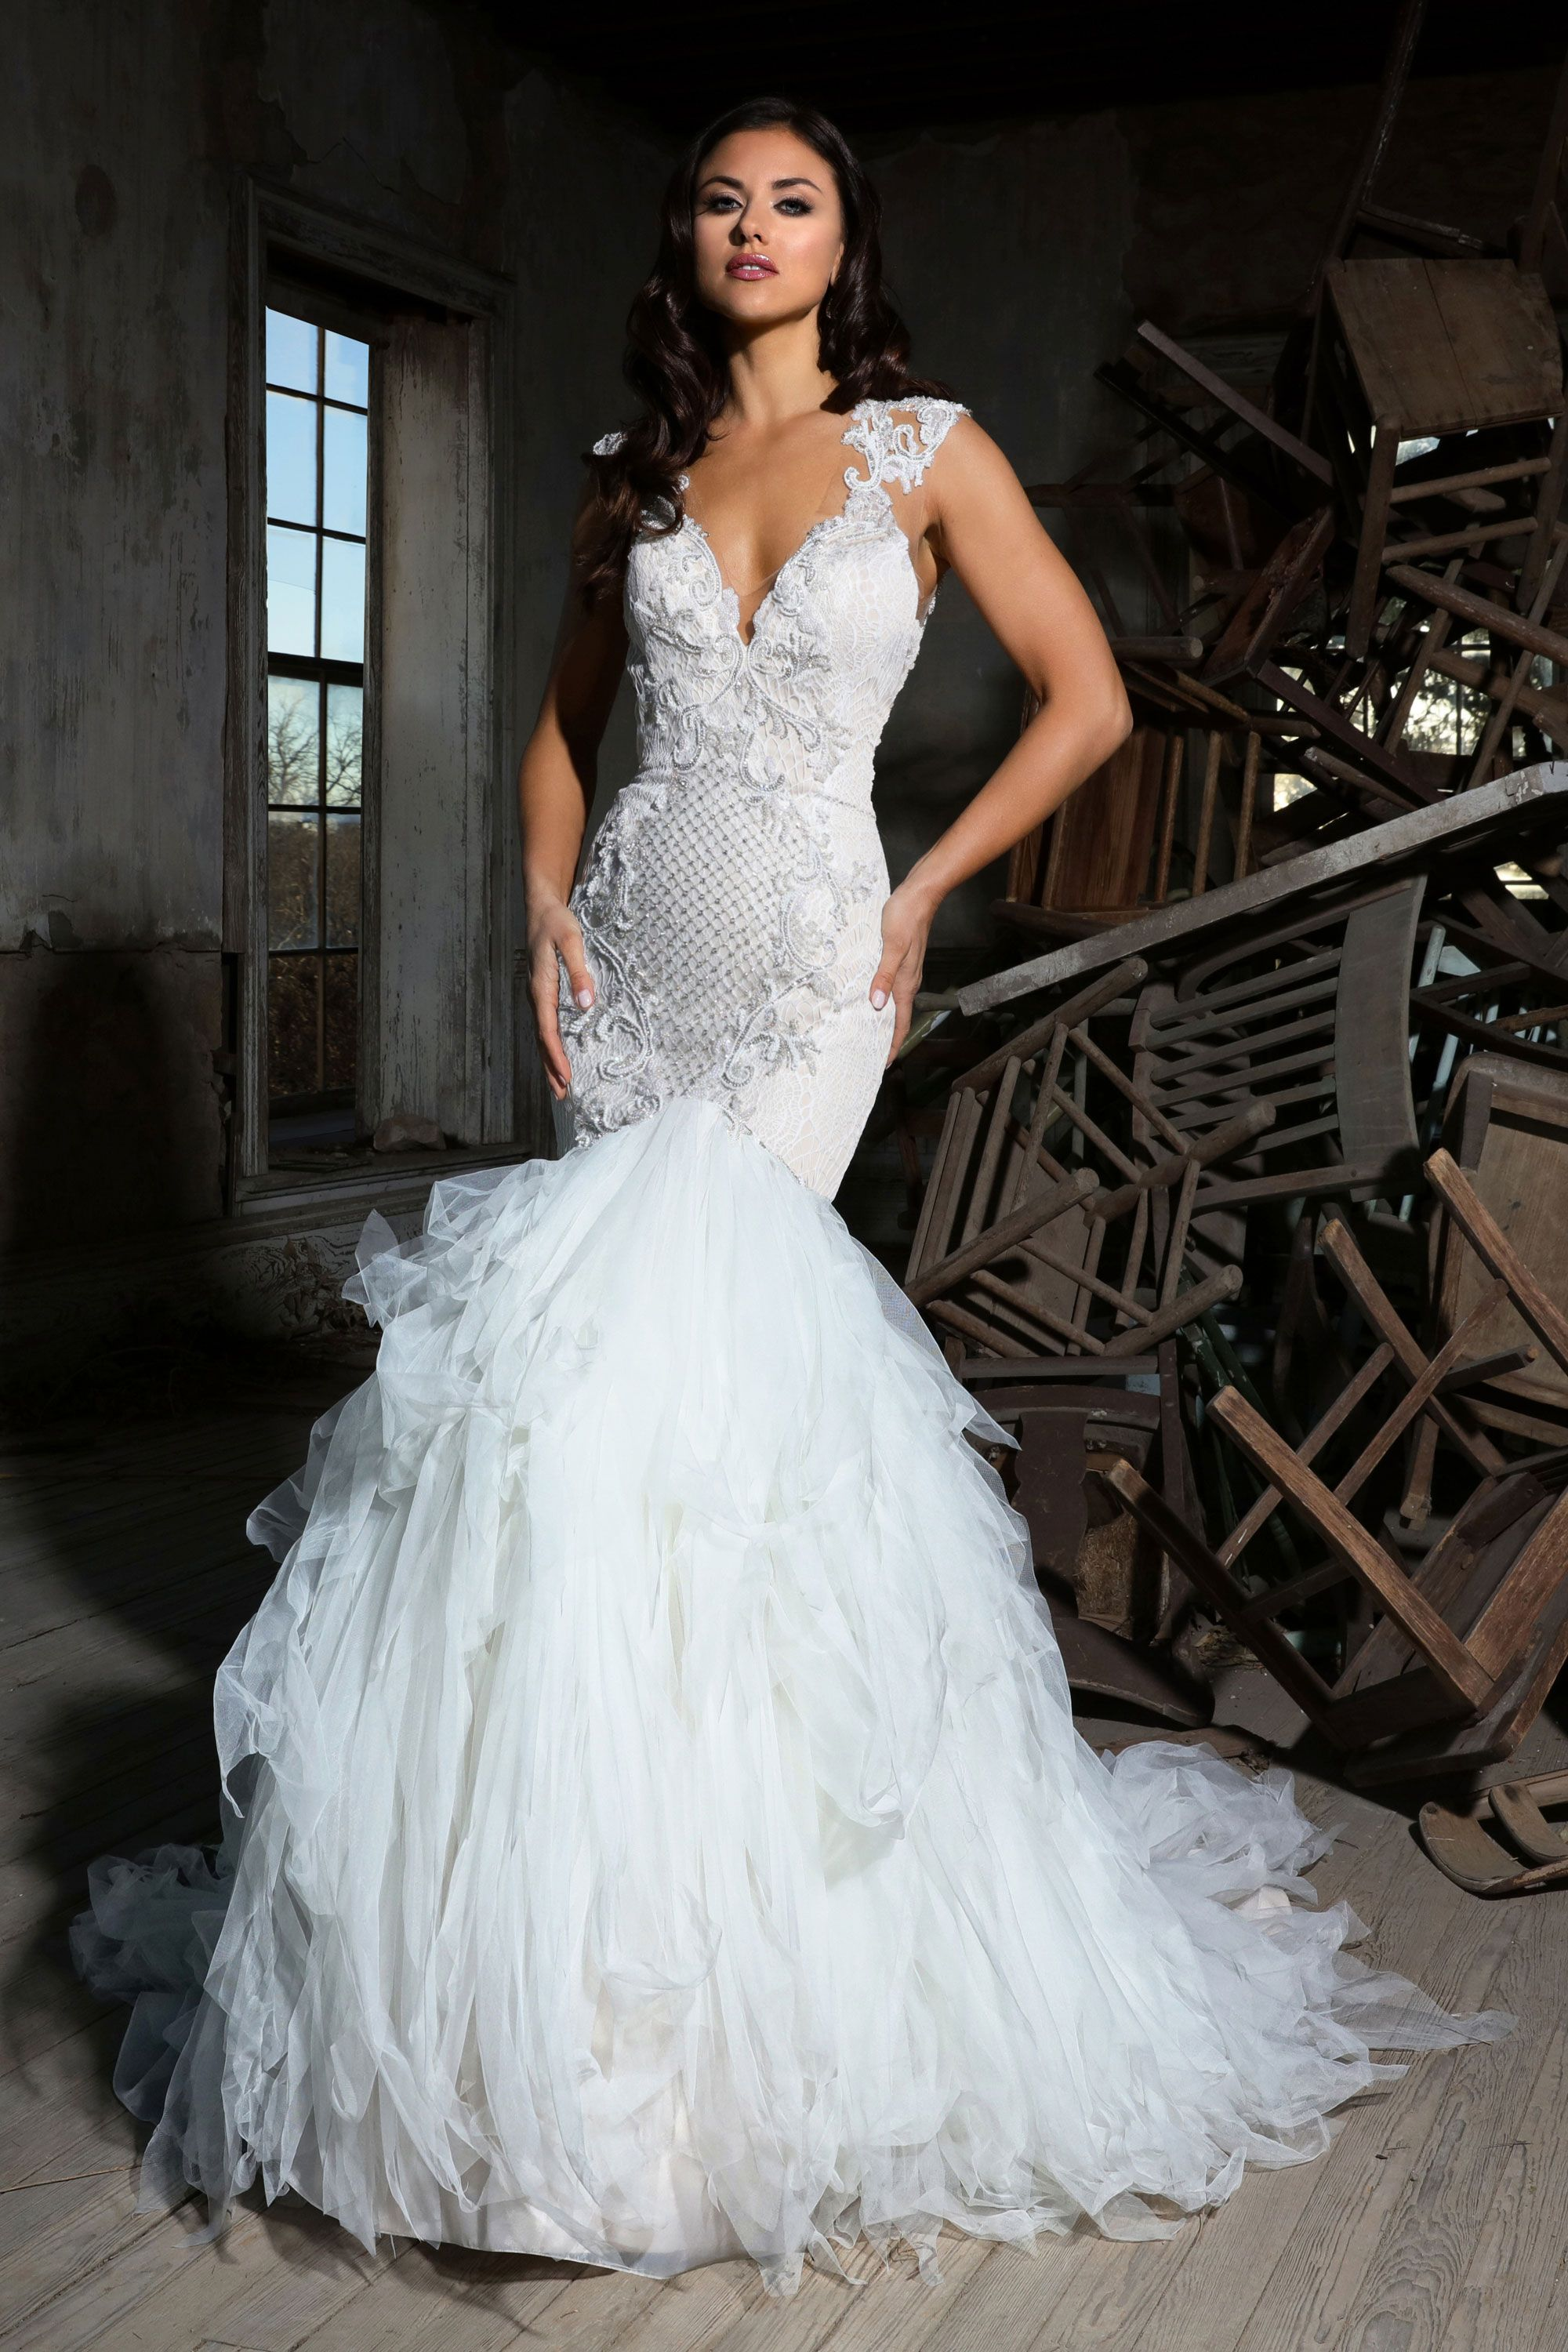 Best Check out this wedding dress from Cristiano Lucci ZSA ZSA locate nearby bridal shops and share privately with your friends and family